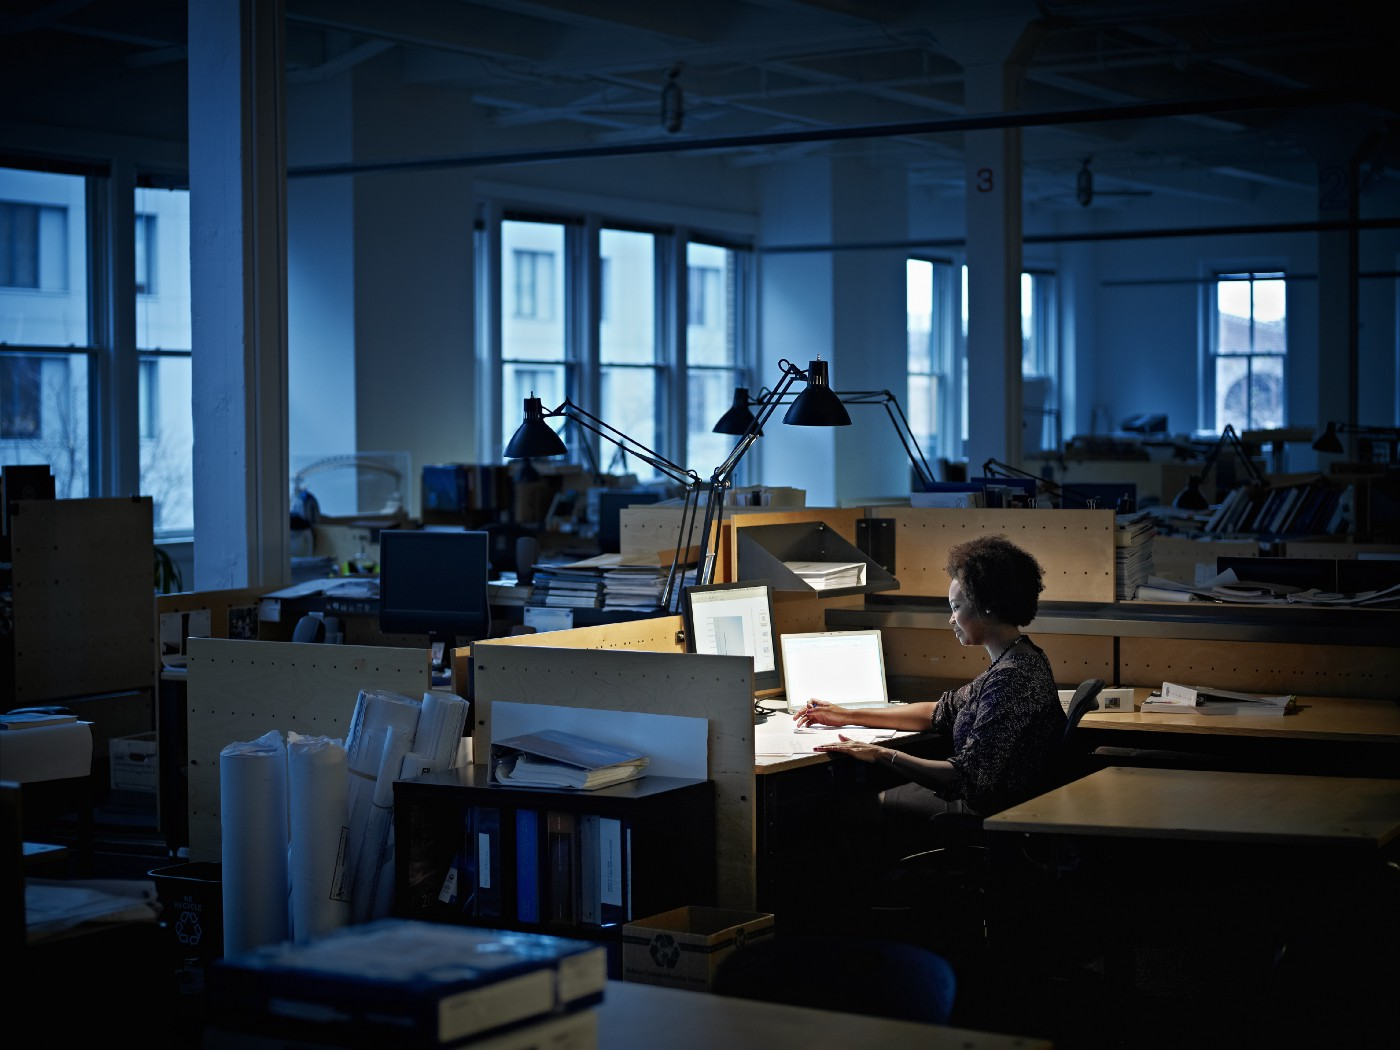 A black woman working alone in a dark office